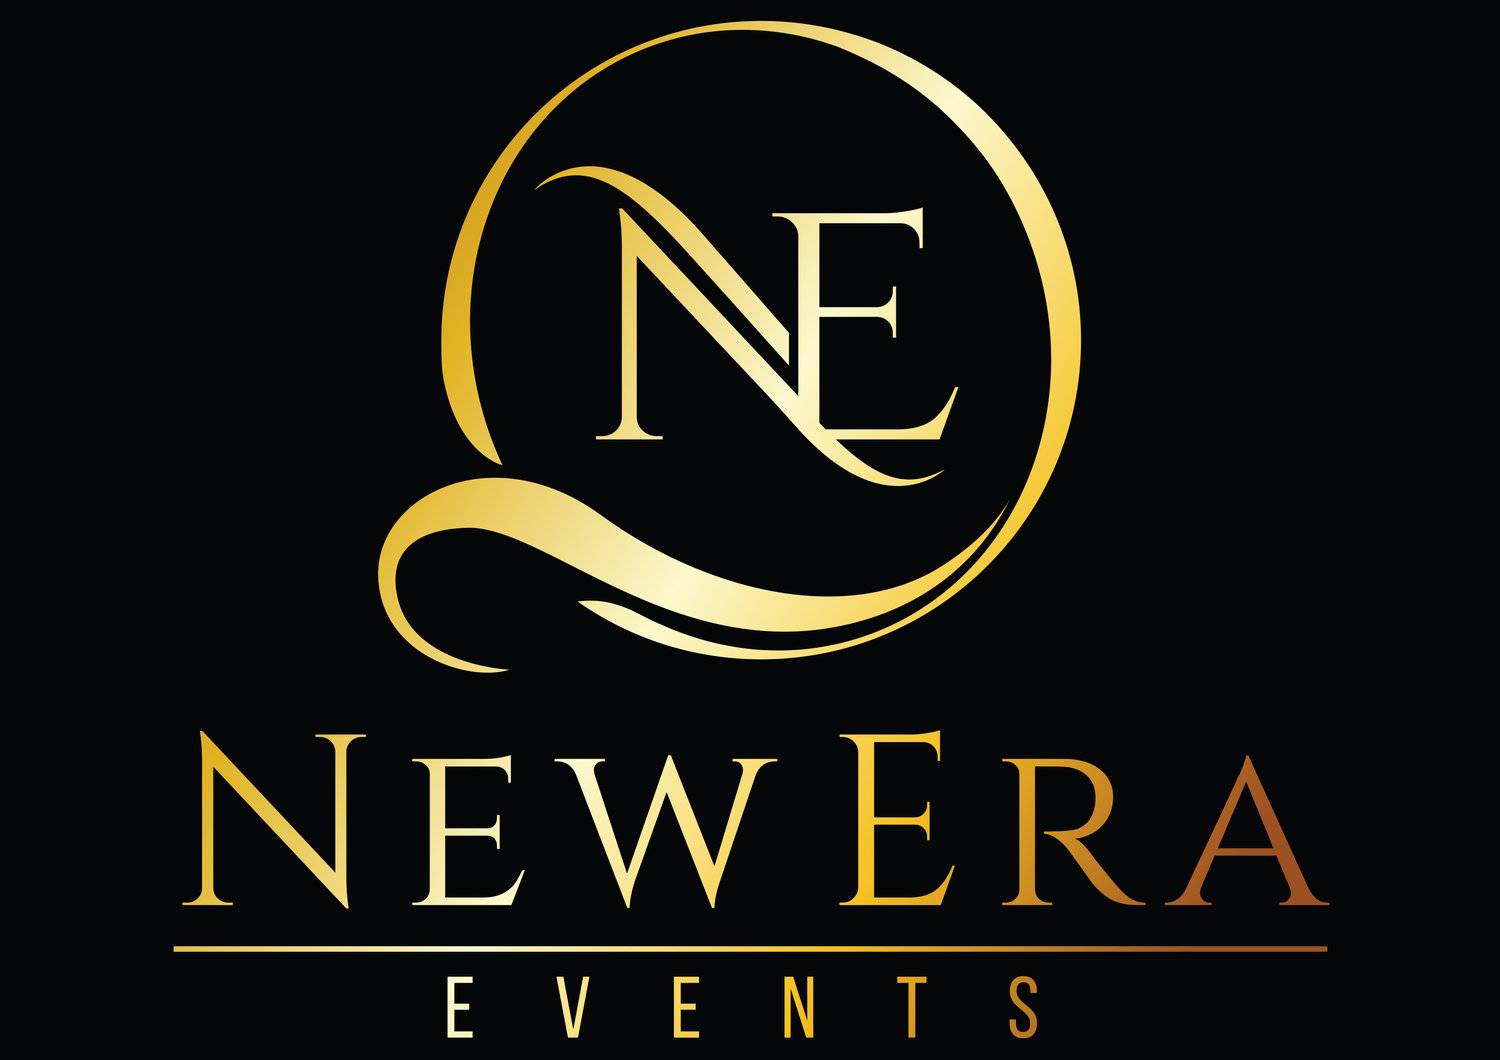 New Era Events